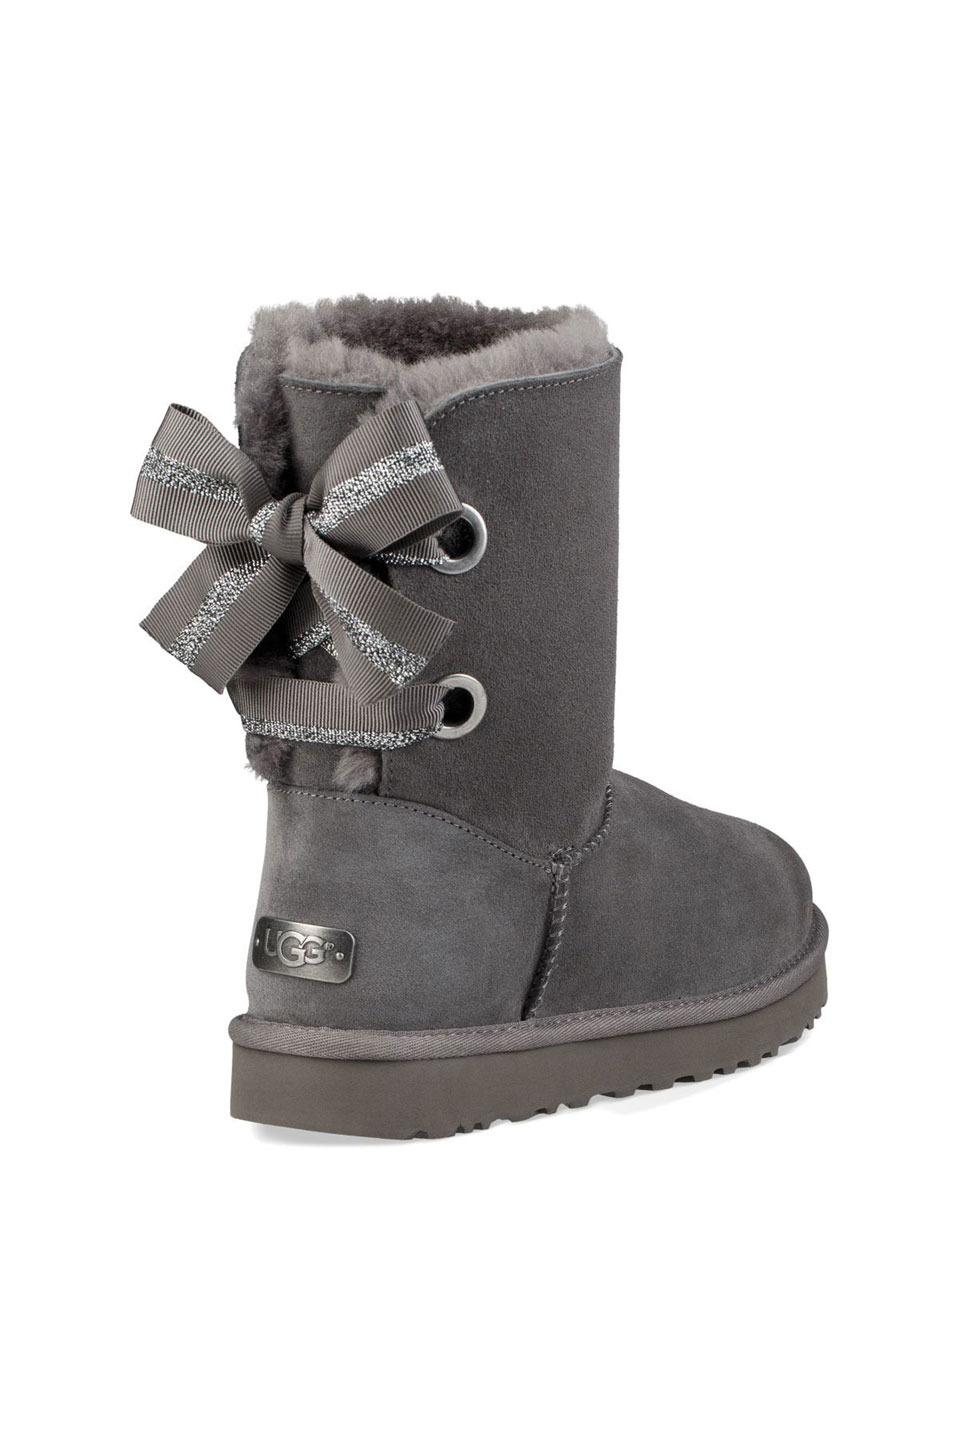 Customizable Bailey Bow Short Boot in Charcoal